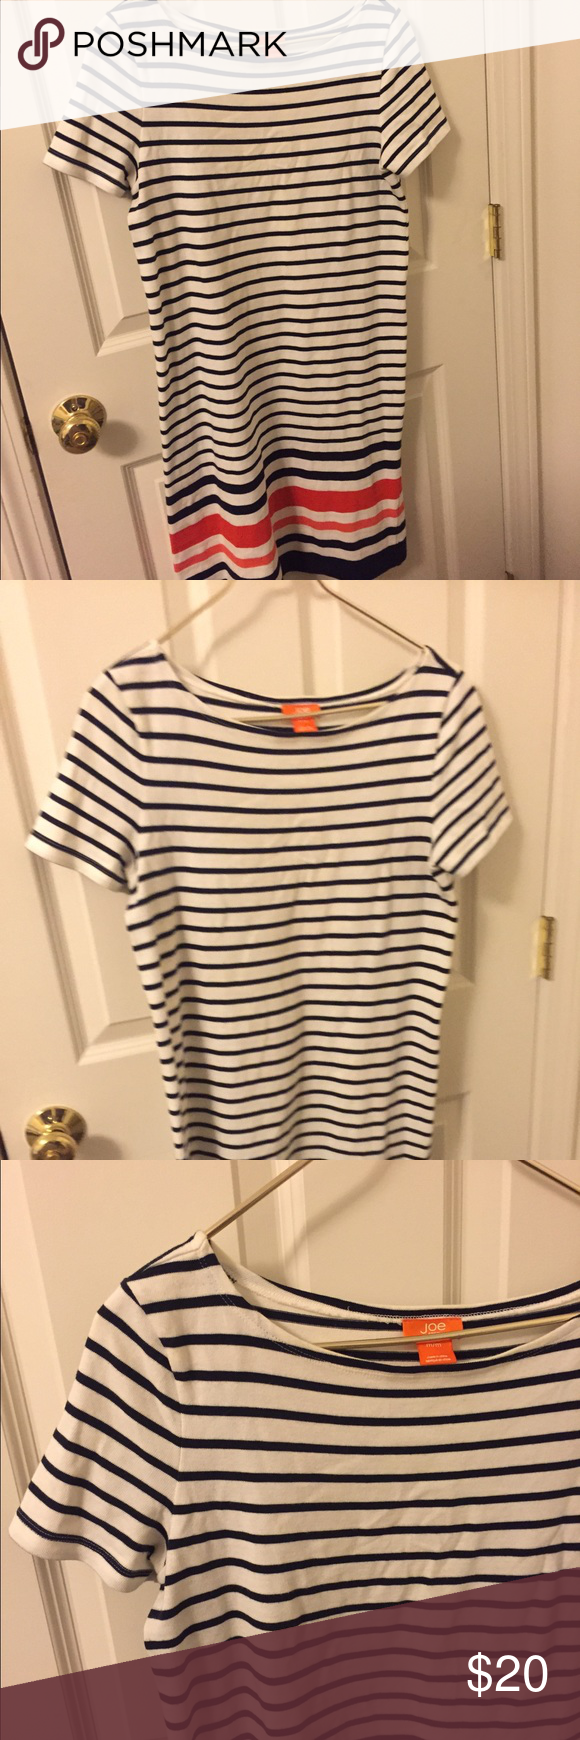 Joes sailor dress Striped dress, shift silhouette. Cute accent colors on the bottom. Material is quite thick! joes Dresses Mini